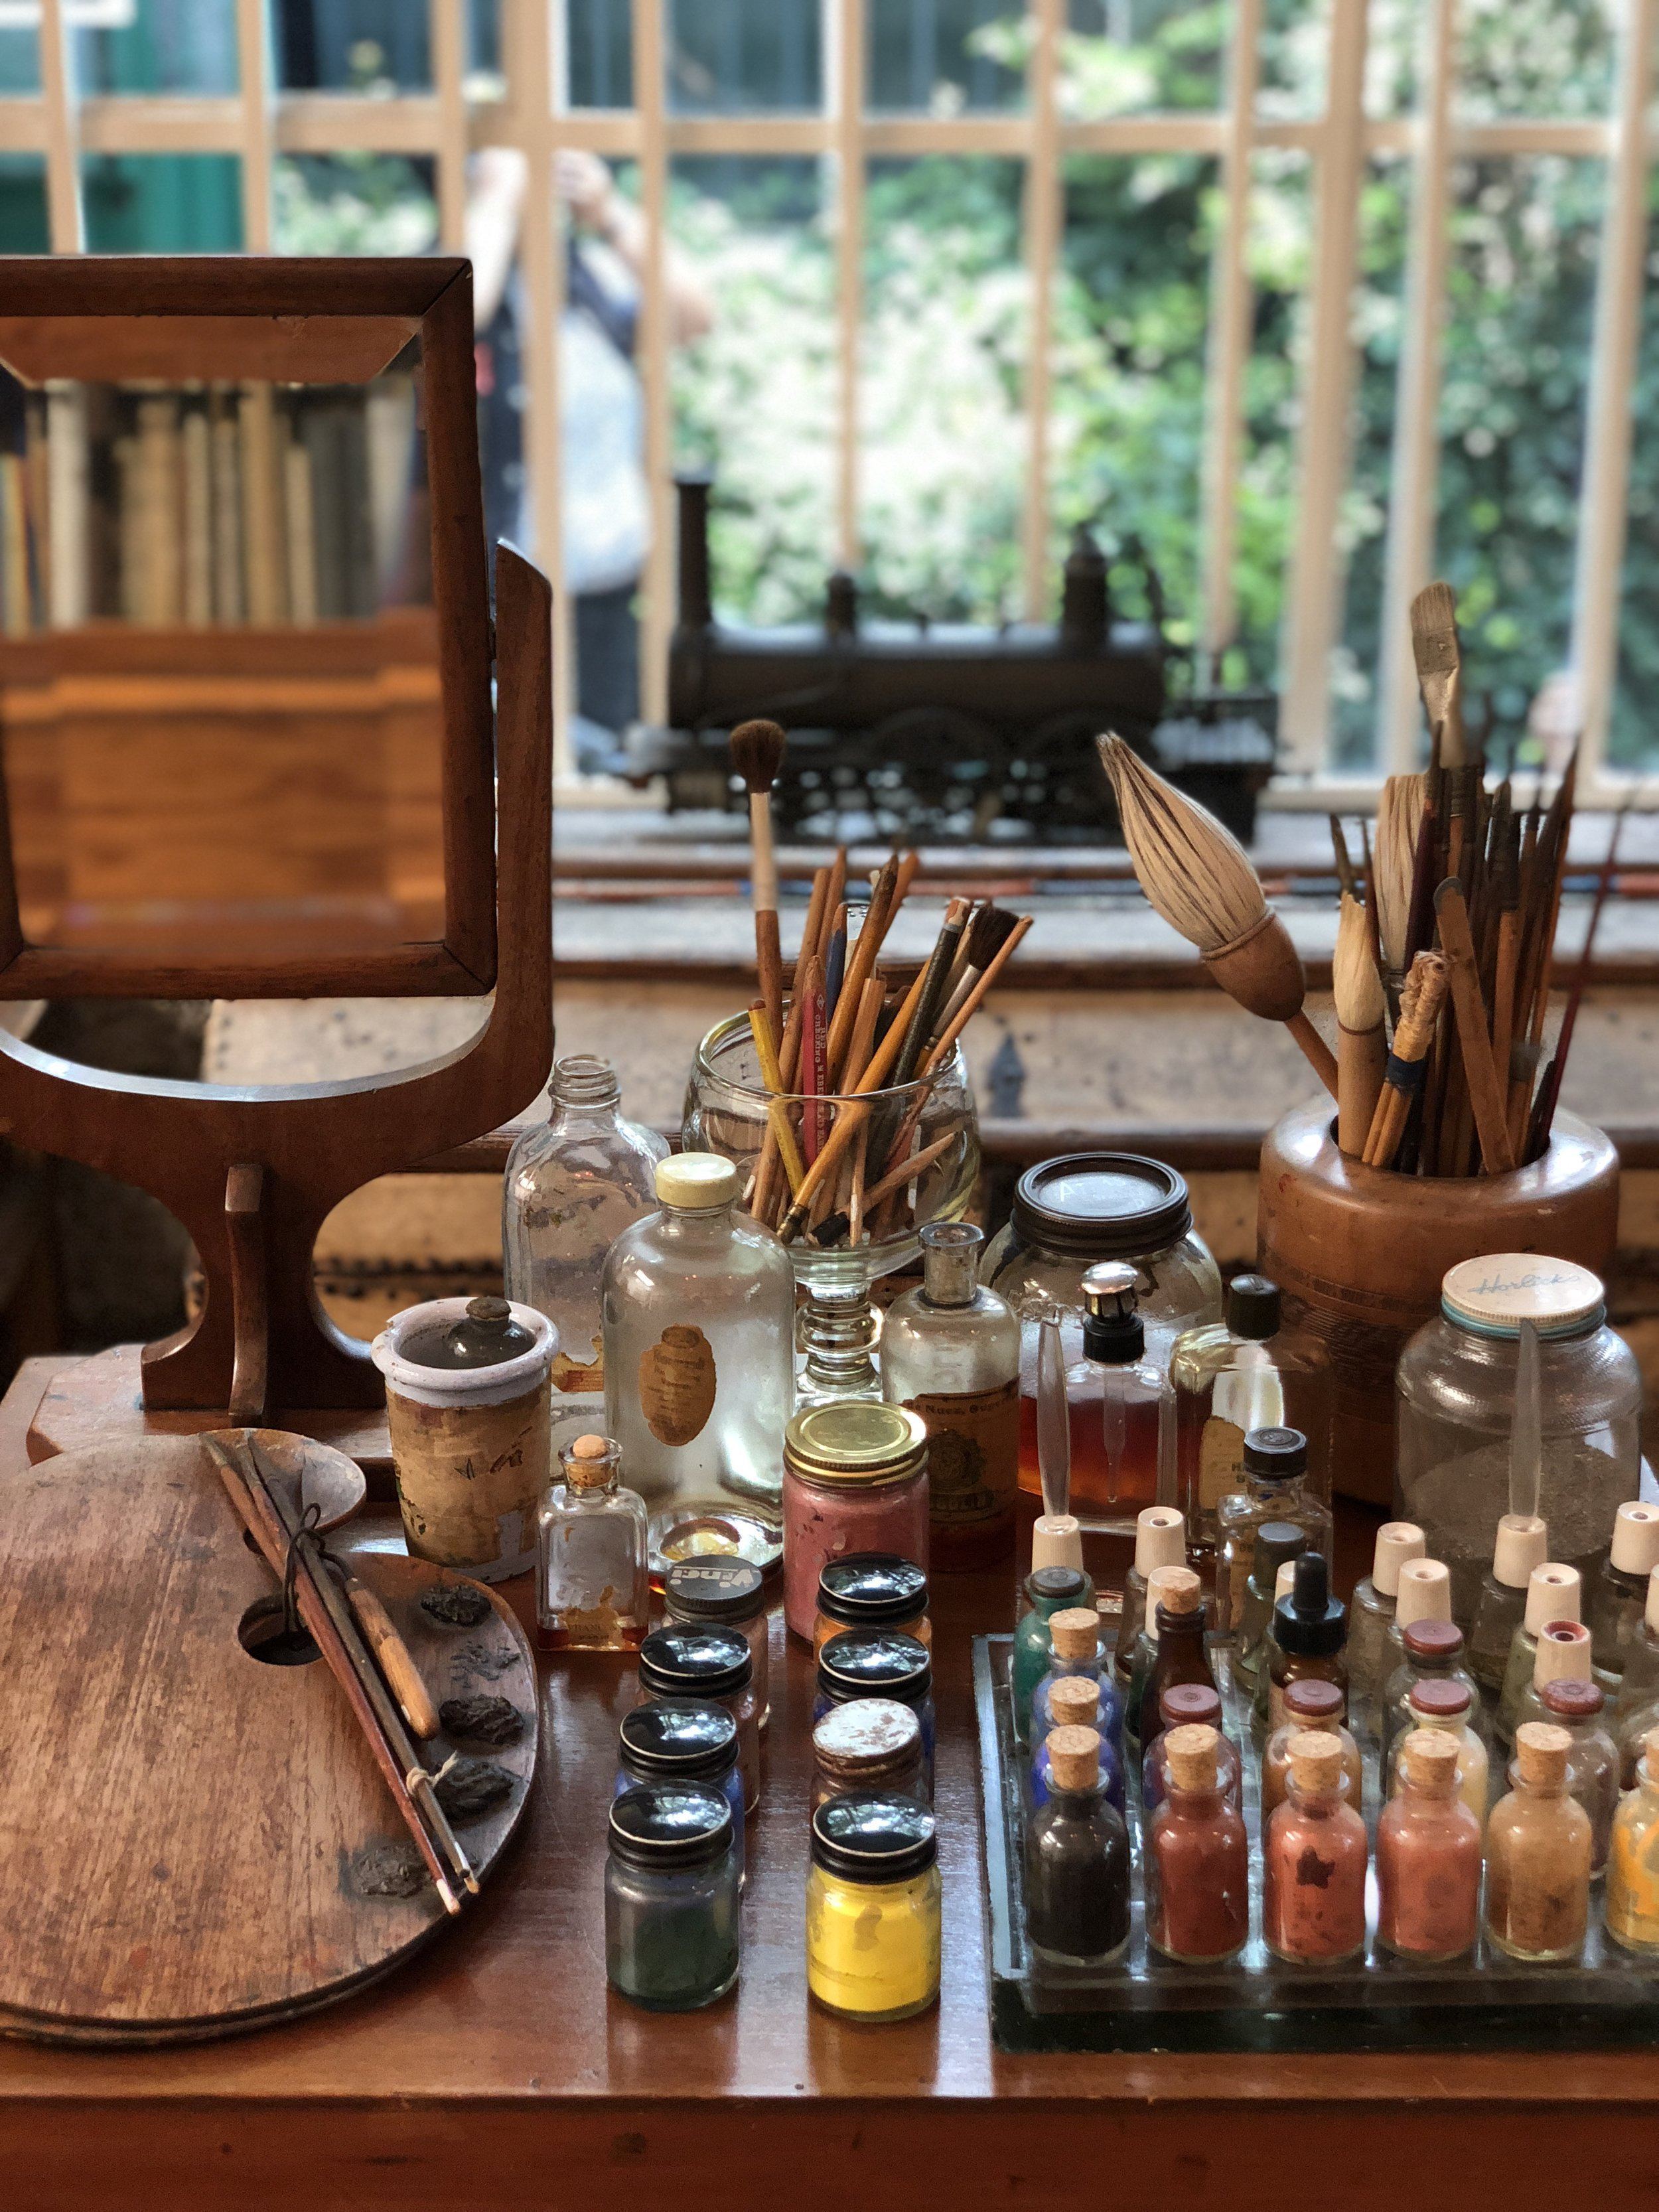 Perfume flasks and varnish jars which Frida used to hold her paint. Just as how she left it.